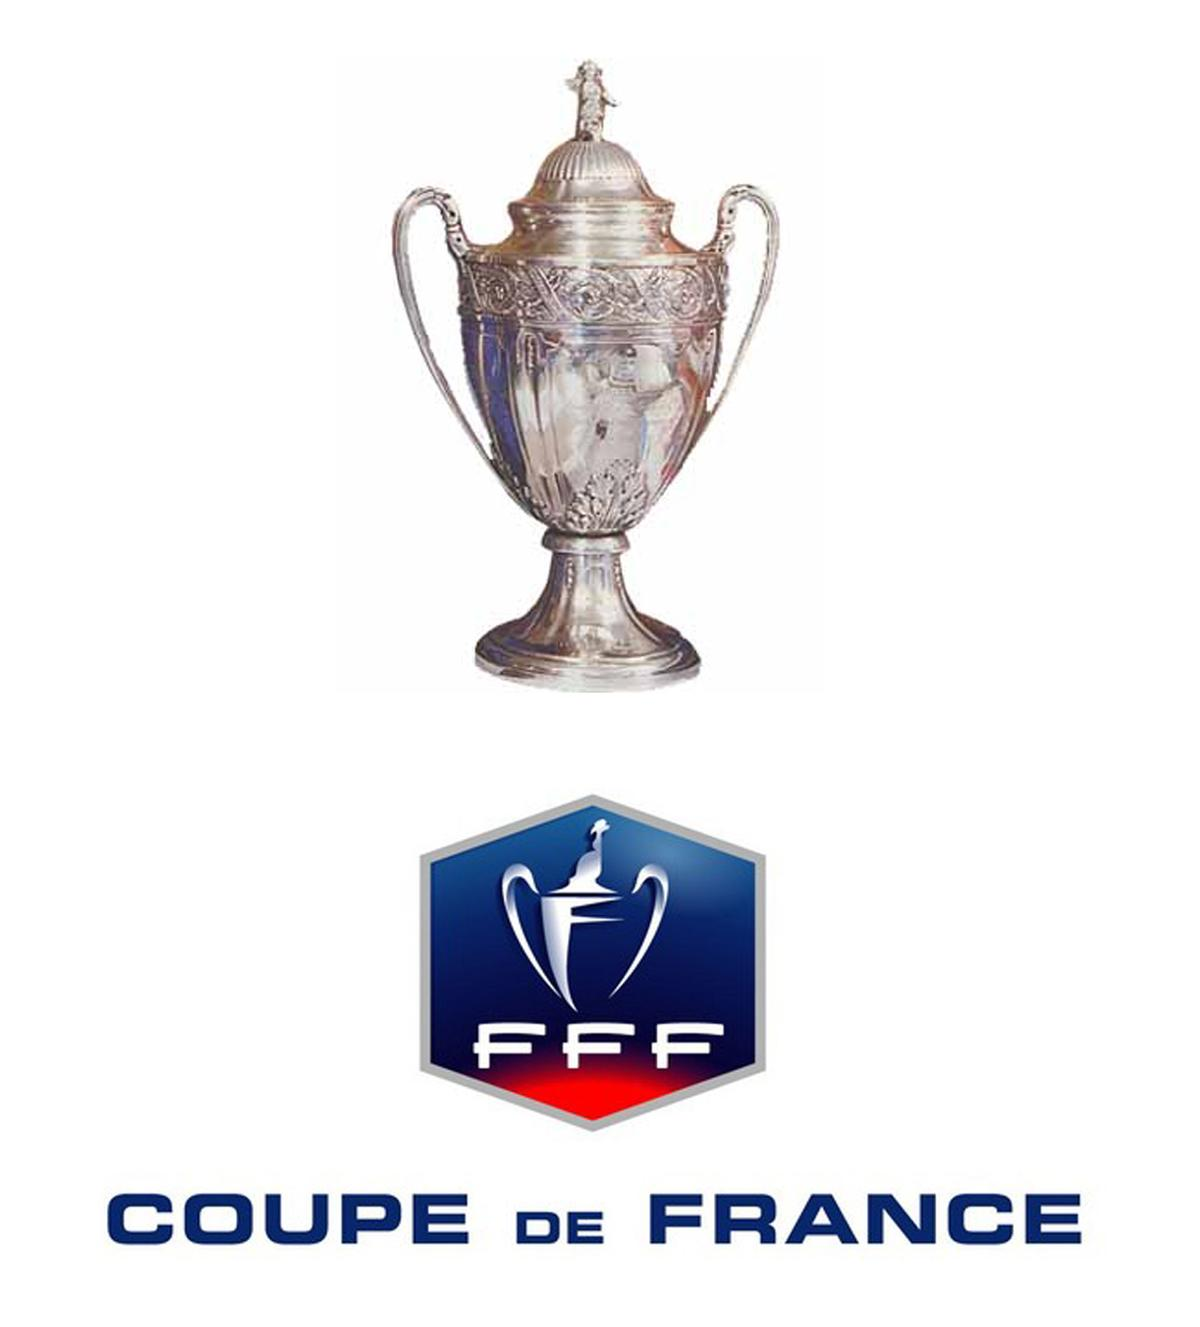 Actualit tirage de la coupe de france club football - Resultat tirage coupe de france 2015 ...